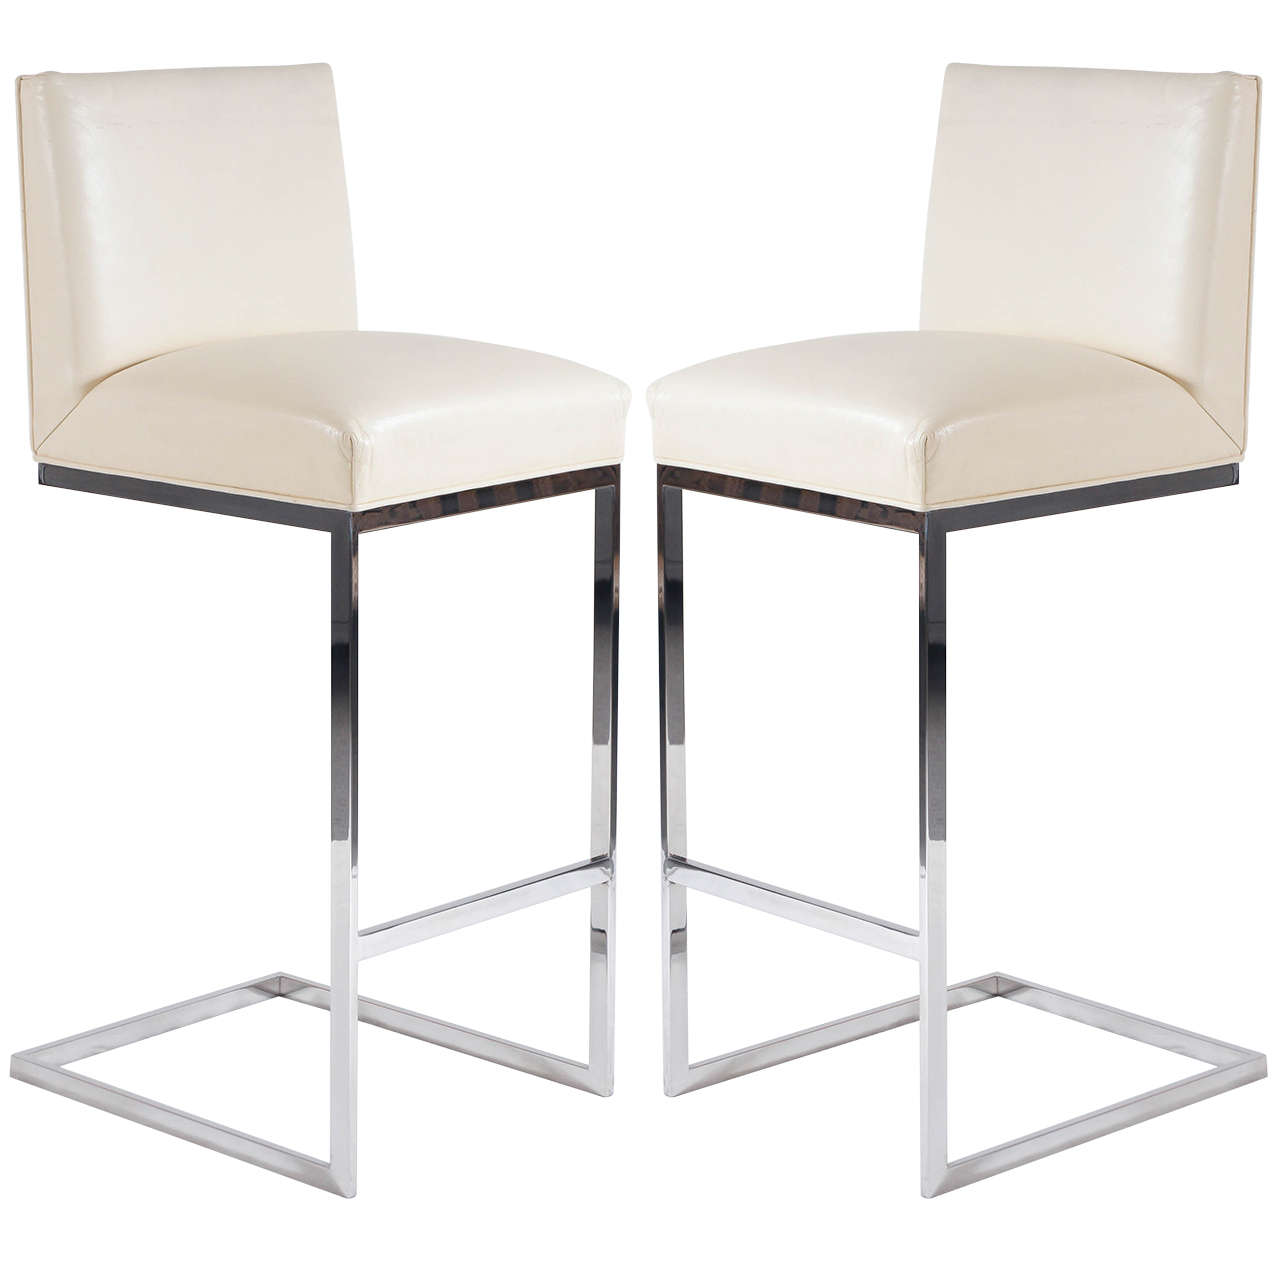 Pair Of Bar Stools In Leather Polished Stainless Steel By Brueton 1